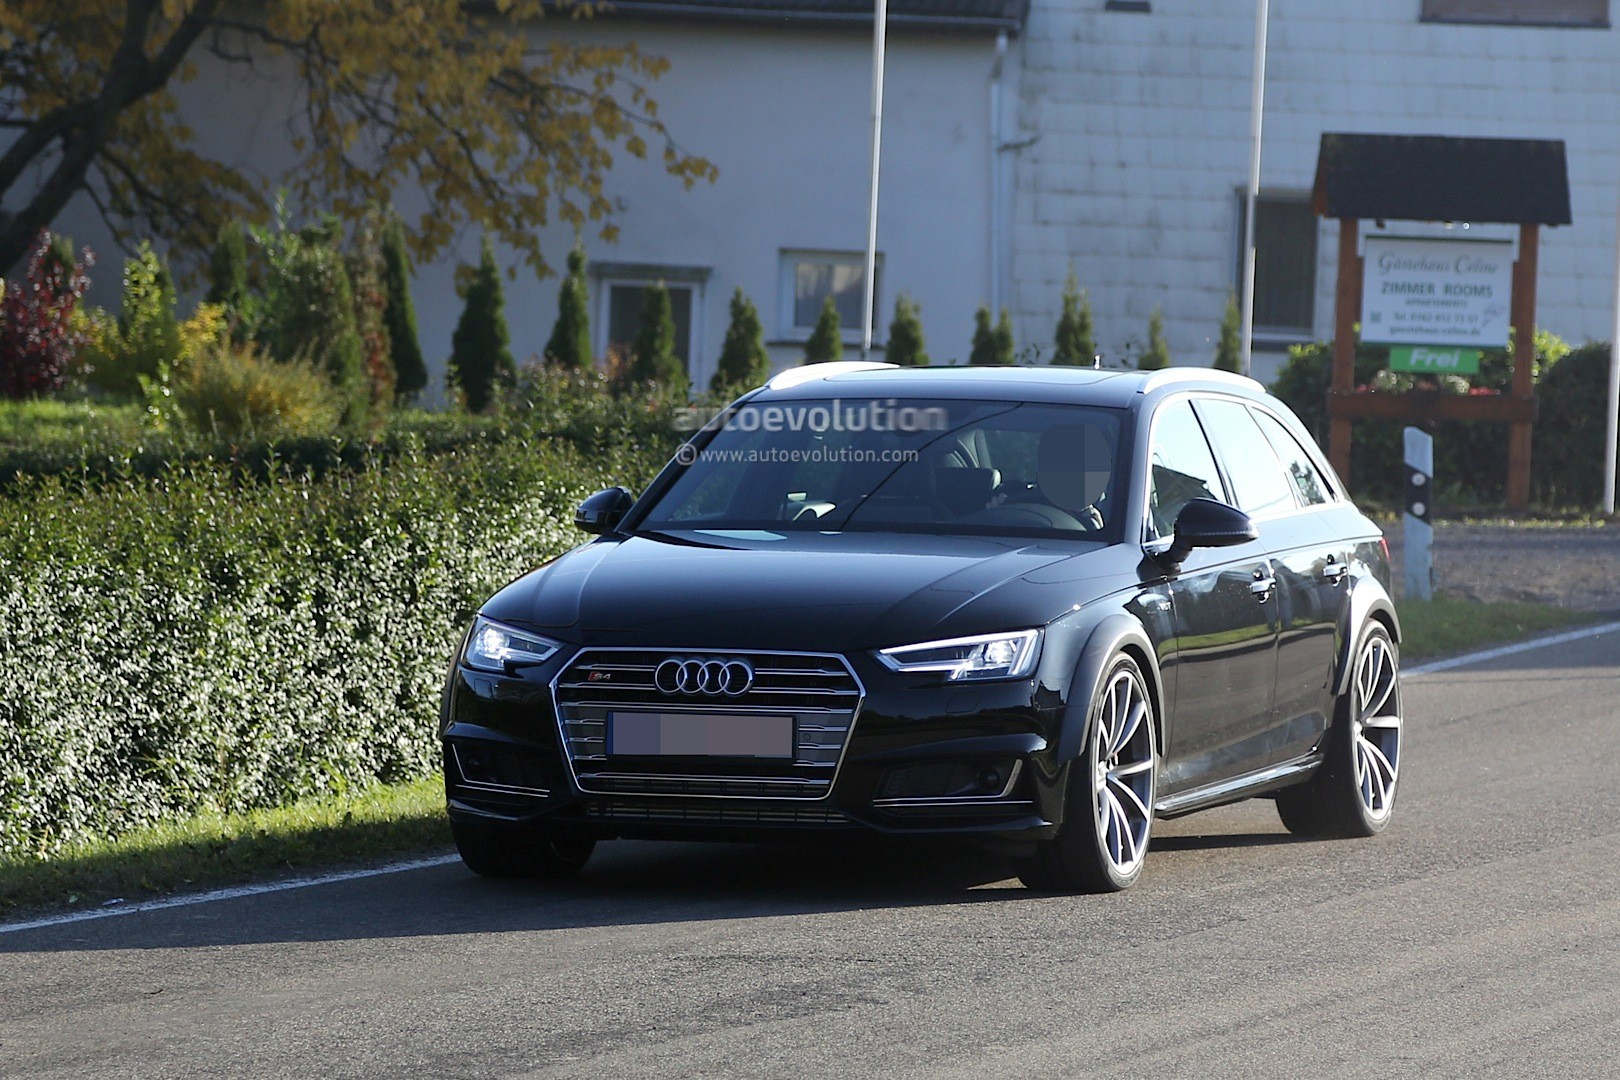 Yes, we know this car looks EXACTLY like the Audi S4 Avant shown in ...